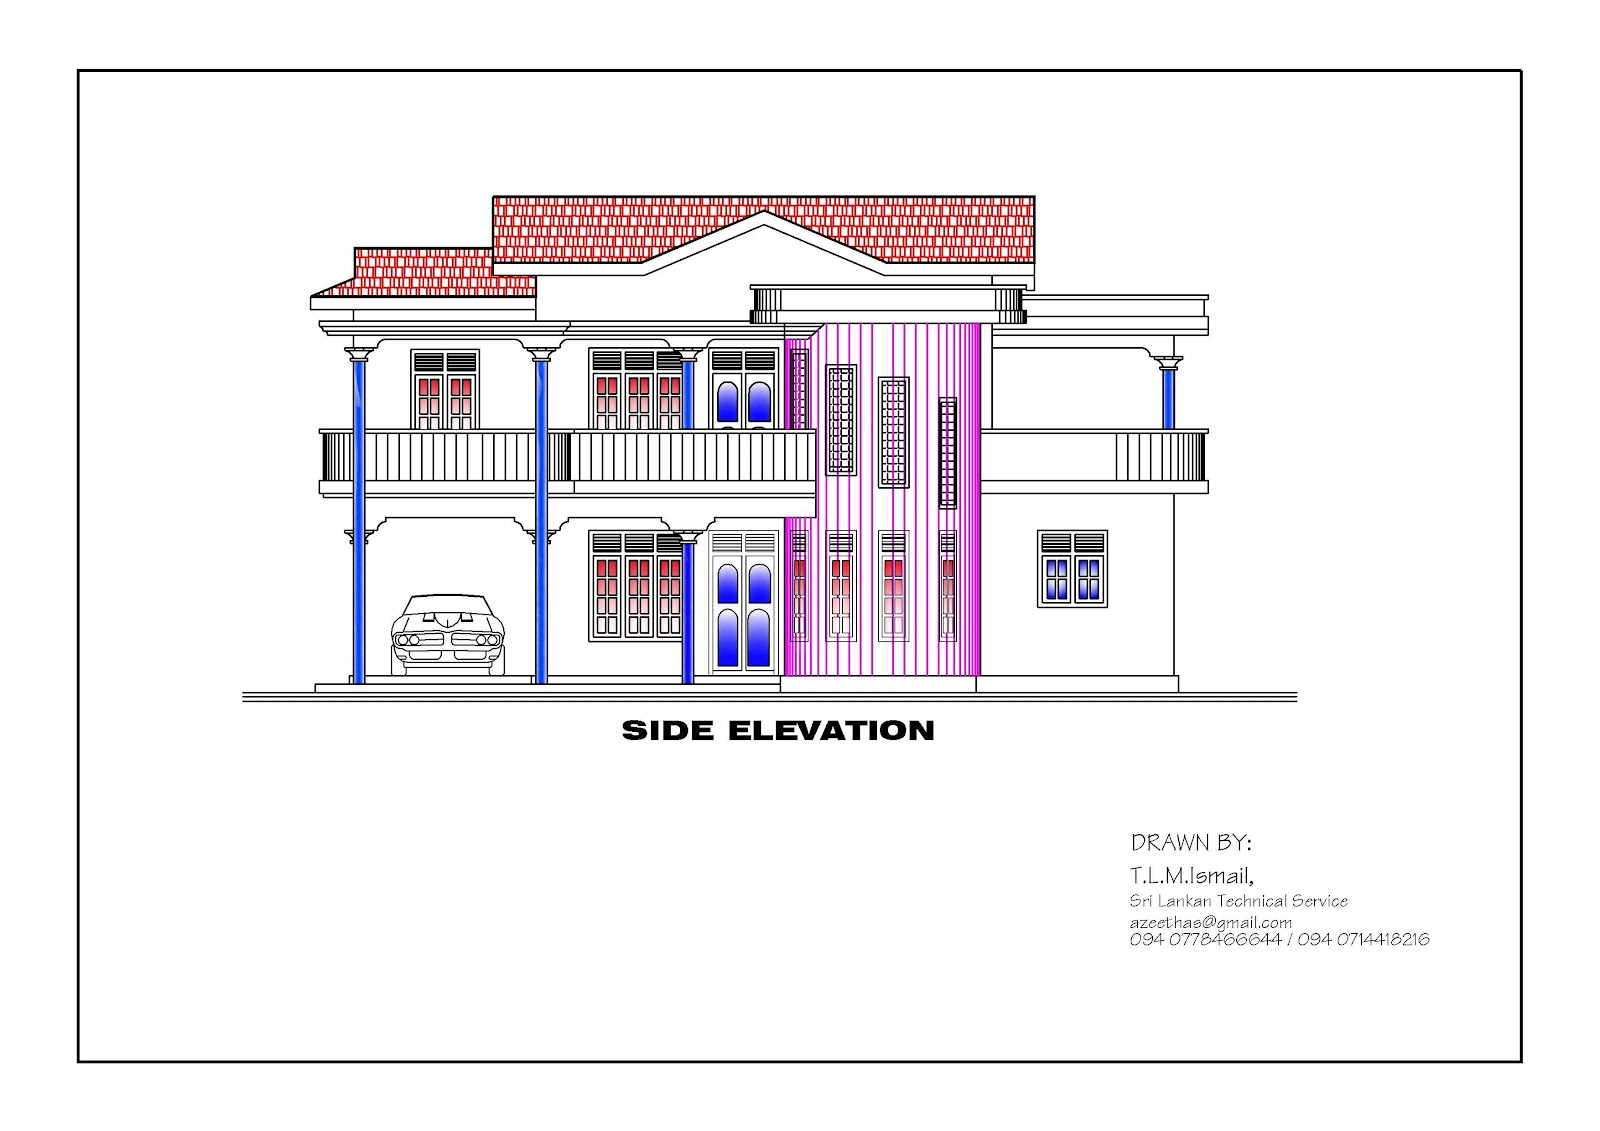 Free Building Drawing At Getdrawings Com Free For Personal Use